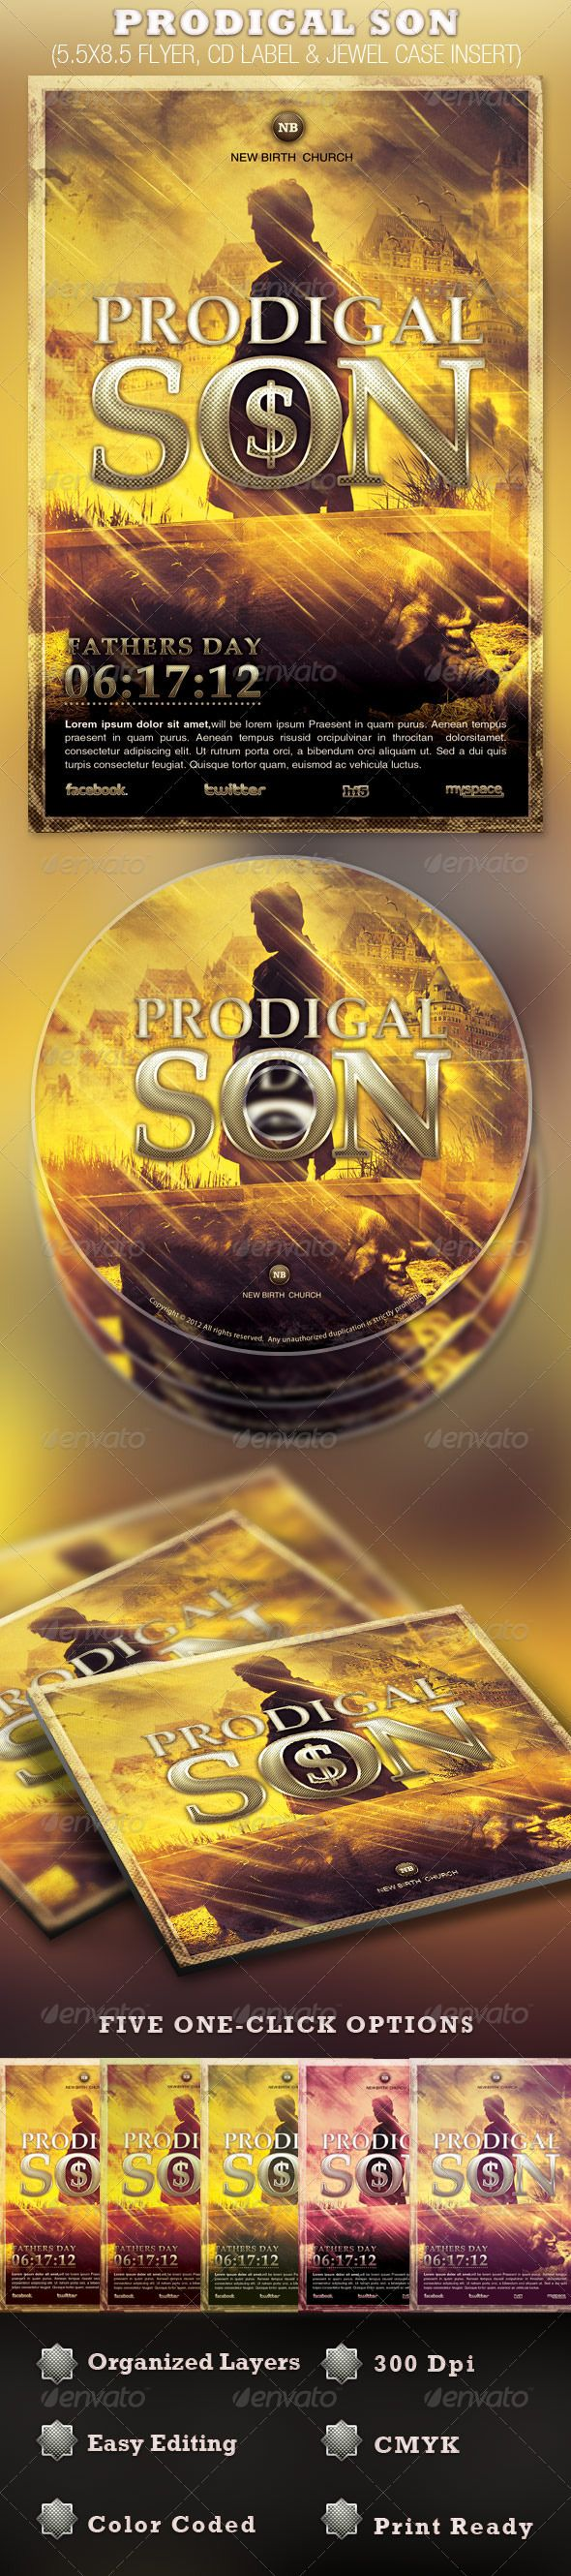 Prodigal Son Flyer and CD Template — Photoshop PSD #best flyer design #church template • Available here → https://graphicriver.net/item/prodigal-son-flyer-and-cd-template/2390405?ref=pxcr